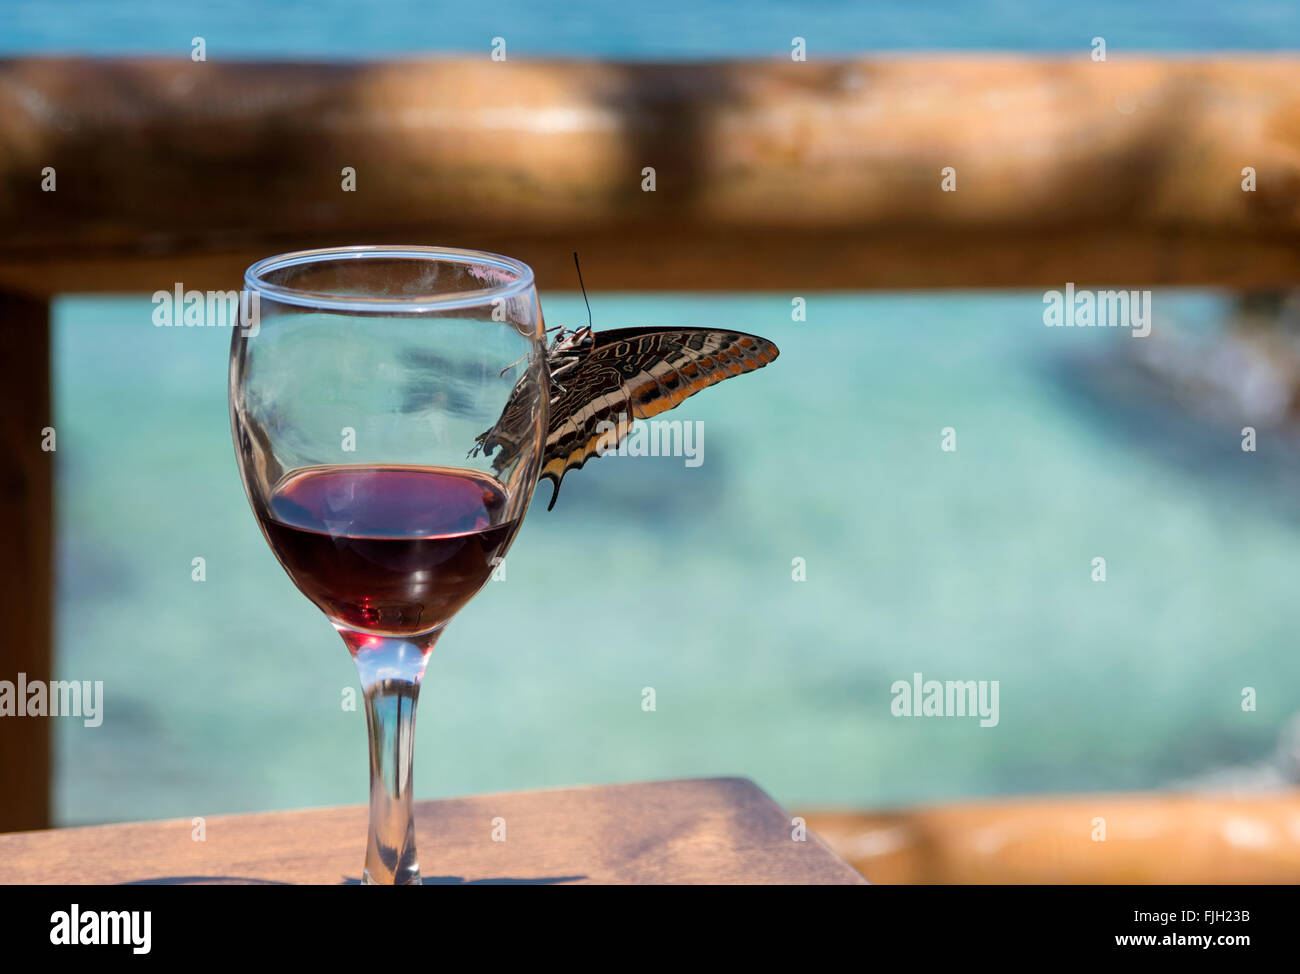 Curieusement l'inspection d'un verre papillon Photo Stock